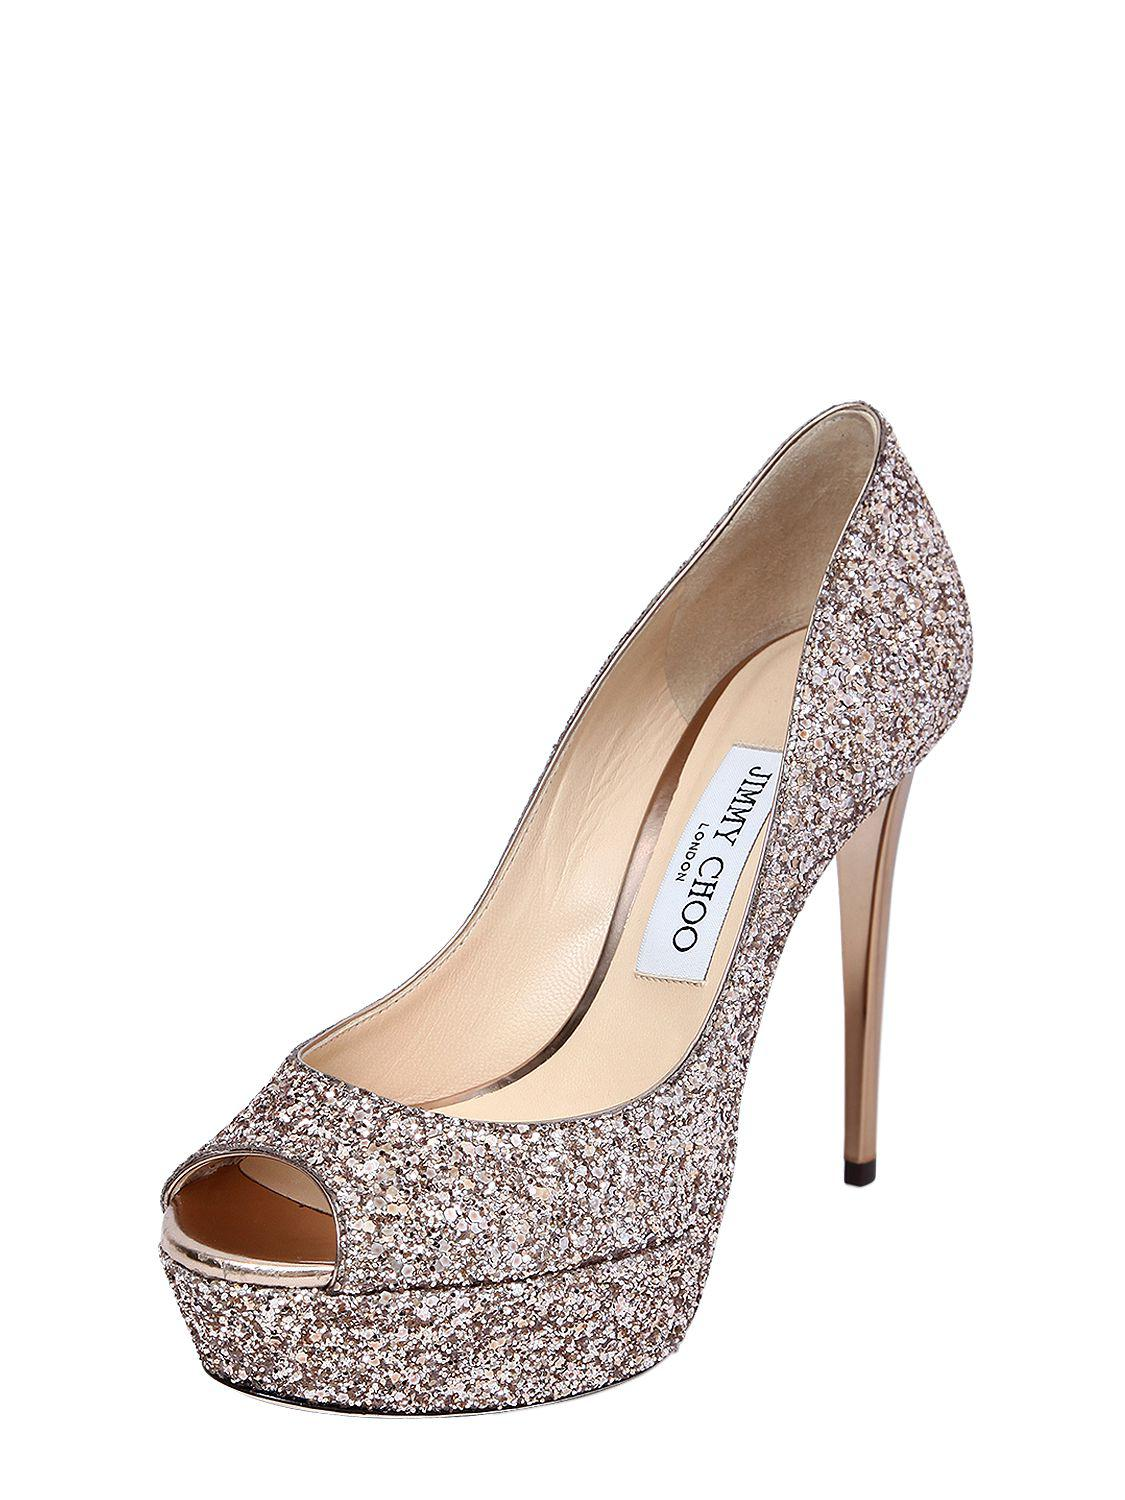 Jimmy choo 120MM JEANETTE GLITTERED OPEN TOE PUMPS Clearance Outlet Locations Free Shipping Wholesale Price Y268Dm3